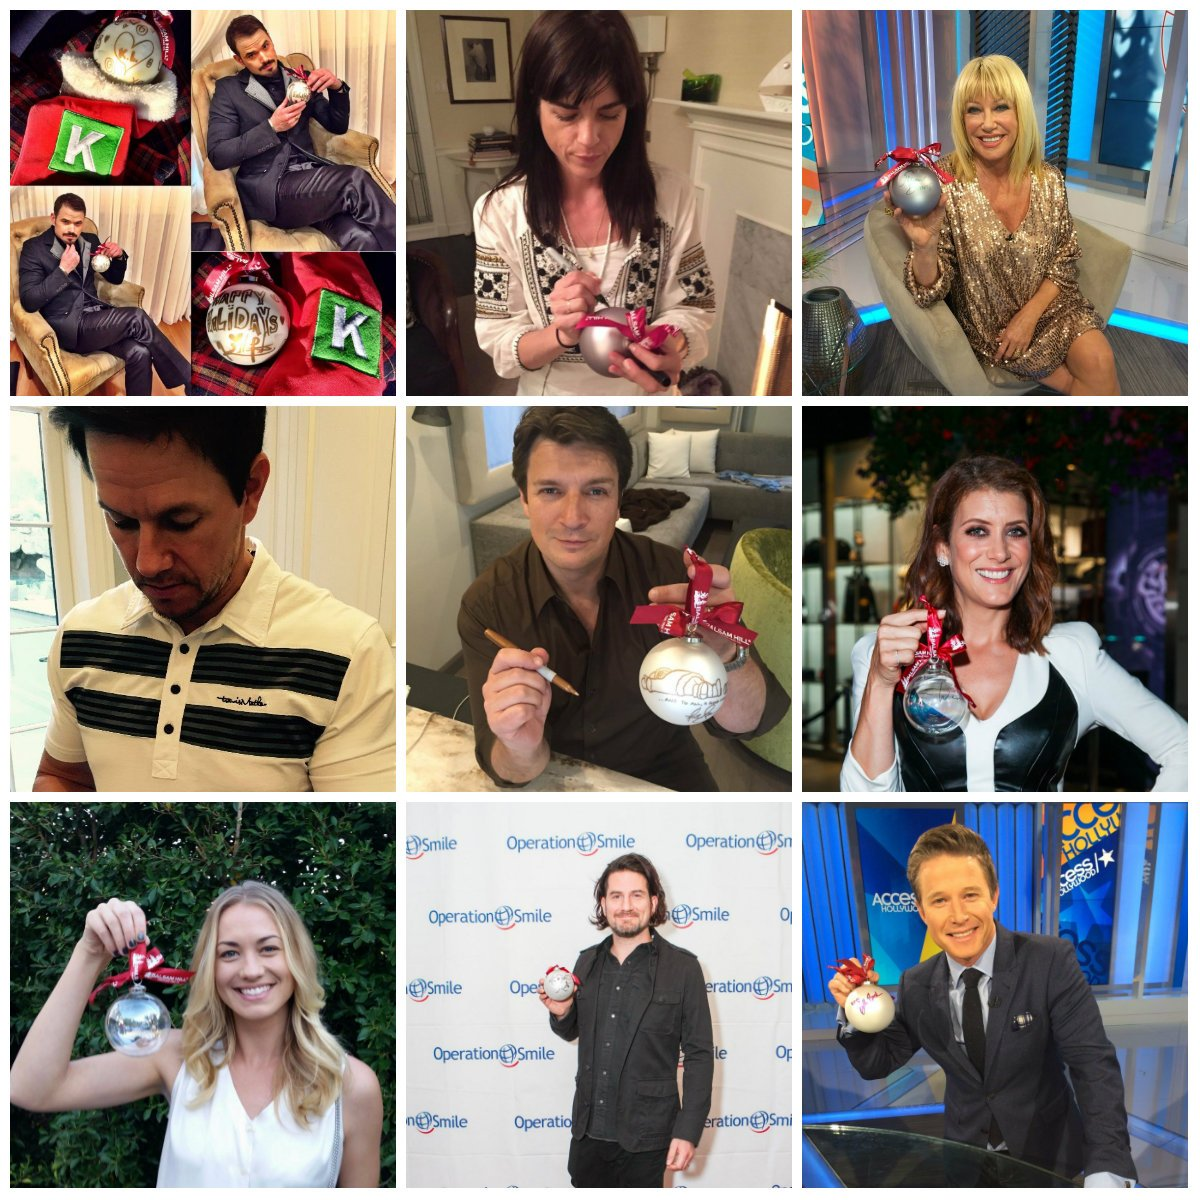 100% of the @balsamhill #celebritiesforsmiles ornament proceeds benefit @operationsmile! https://t.co/Ssy8OnnPMU https://t.co/WYR7wK7sCx